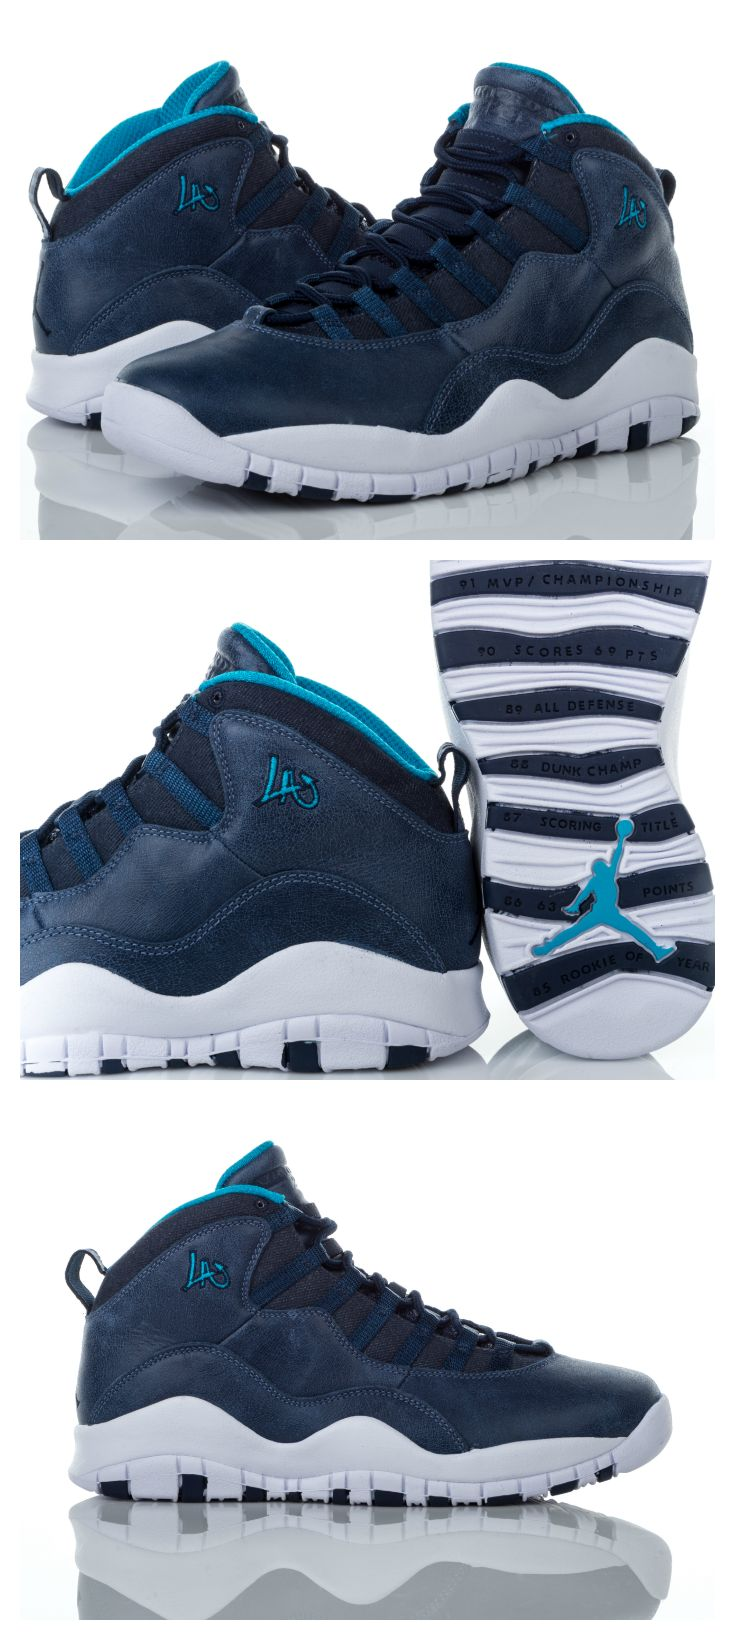 Look fly with this shoe inspired by the City of Angels. Get the Jordan Retro 10 'LA' now.